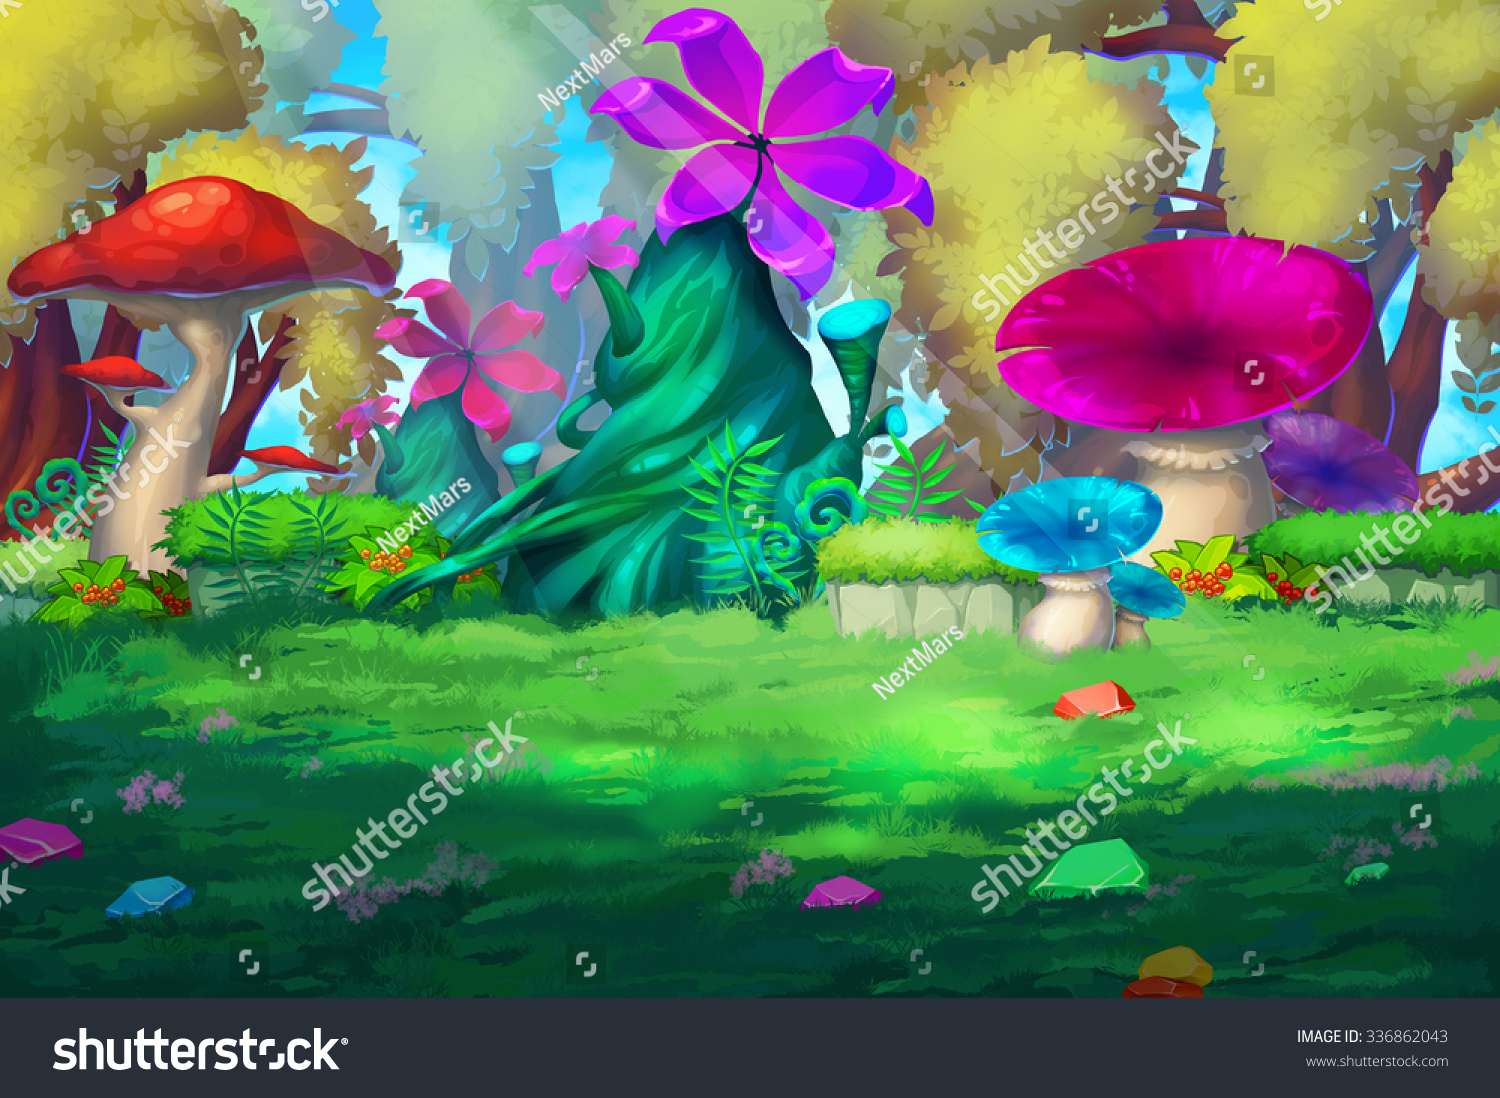 Illustration Colorful Forest Huge Flowers Mushroom Stock ... Anime Forest Clearing Background